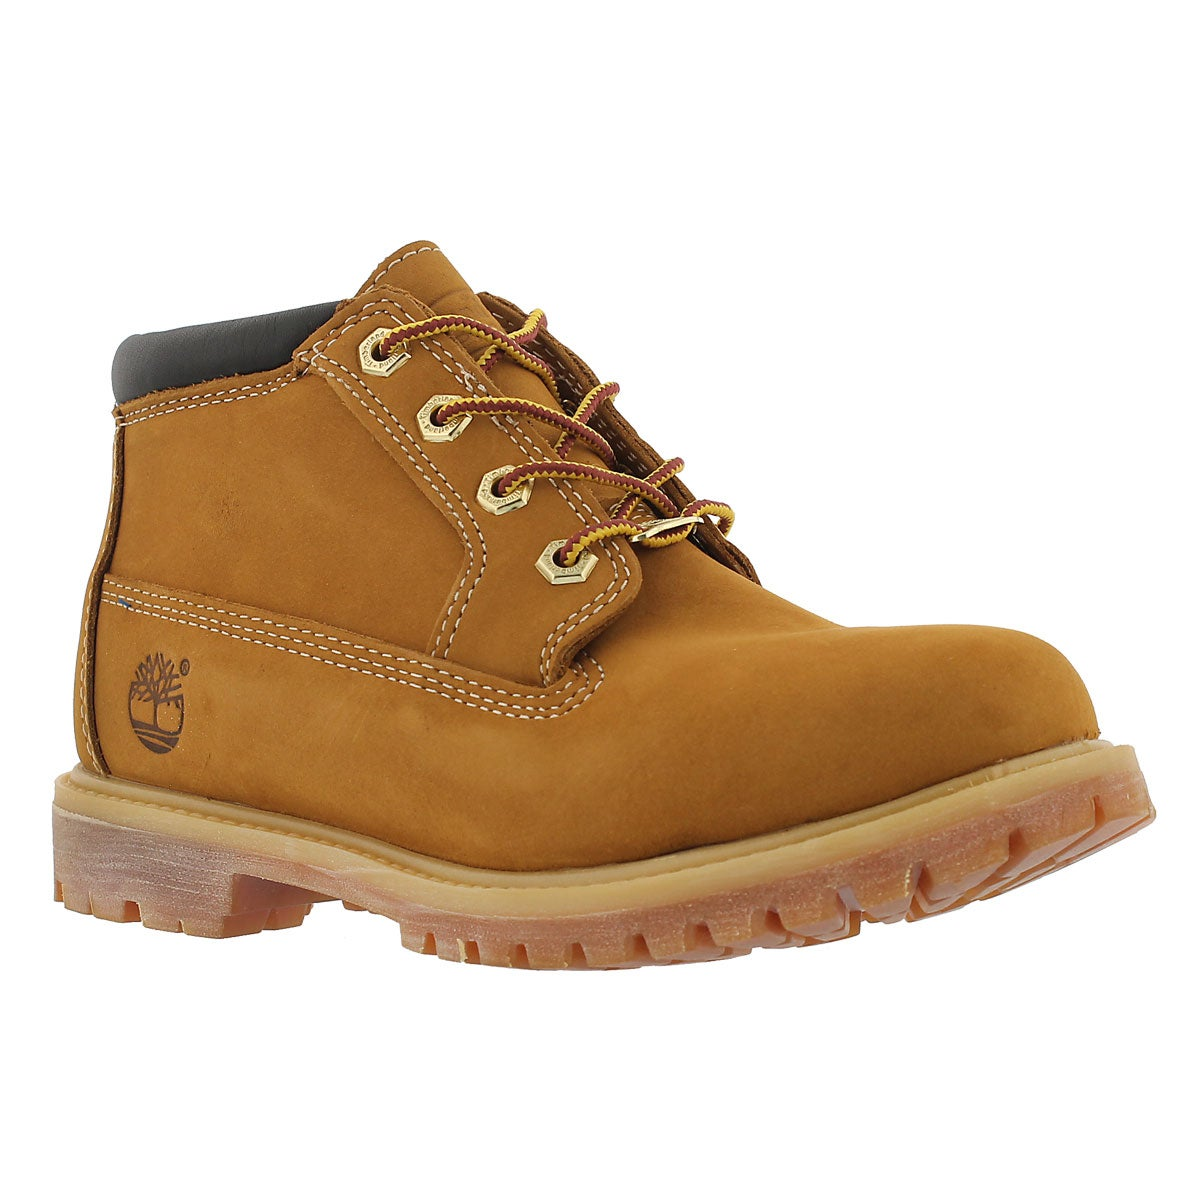 Women's NELLIE wheat 4-eye chukka boots